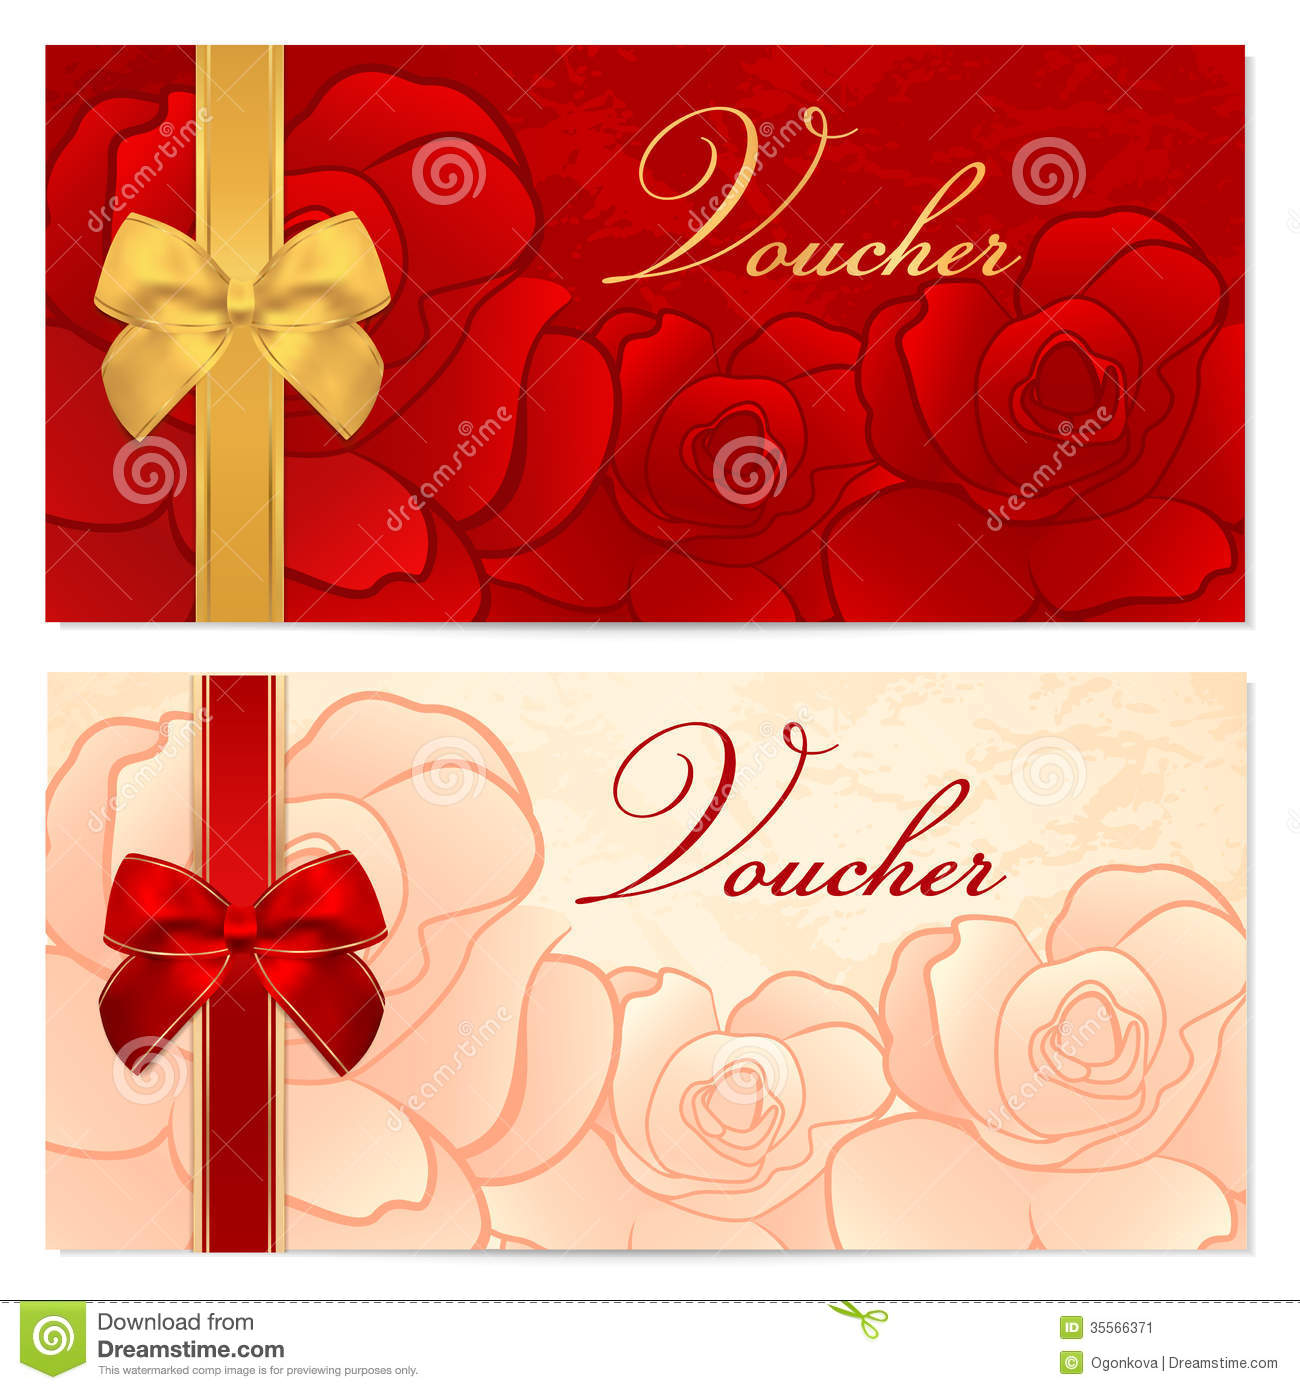 Gift Certificate (Voucher) Template. Bow, Pattern Royalty Free ...